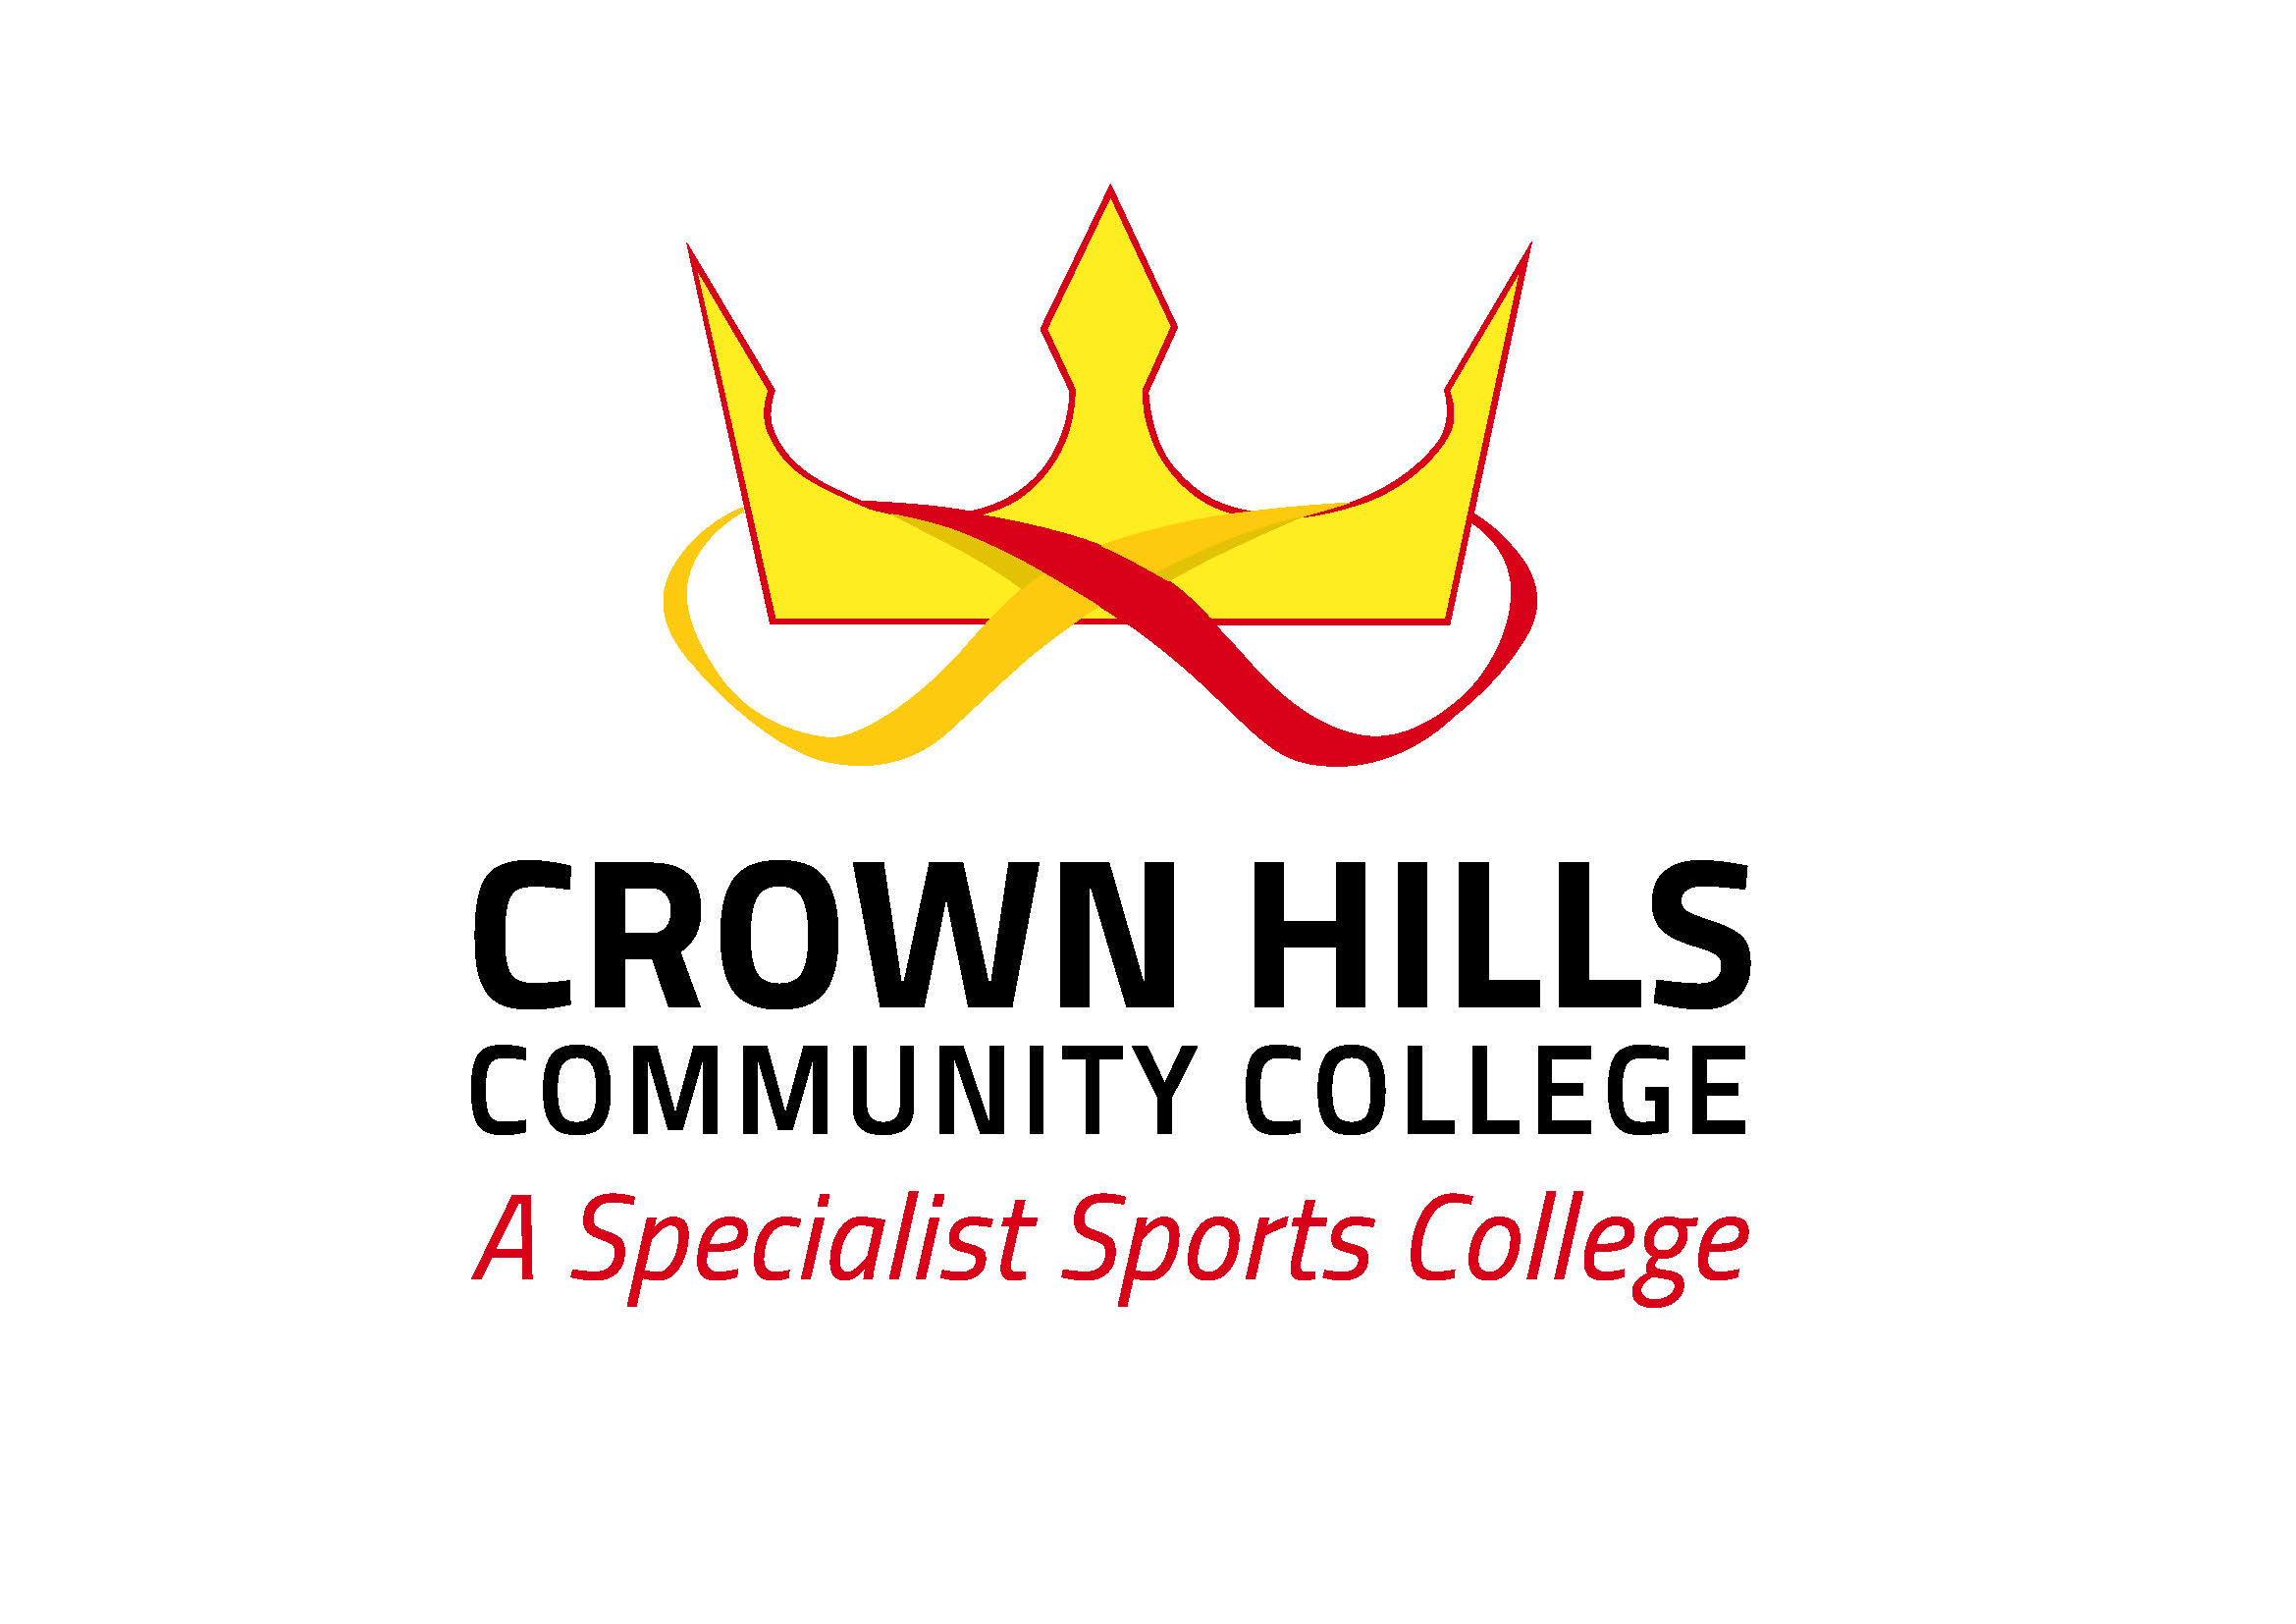 Crown Hills Community College